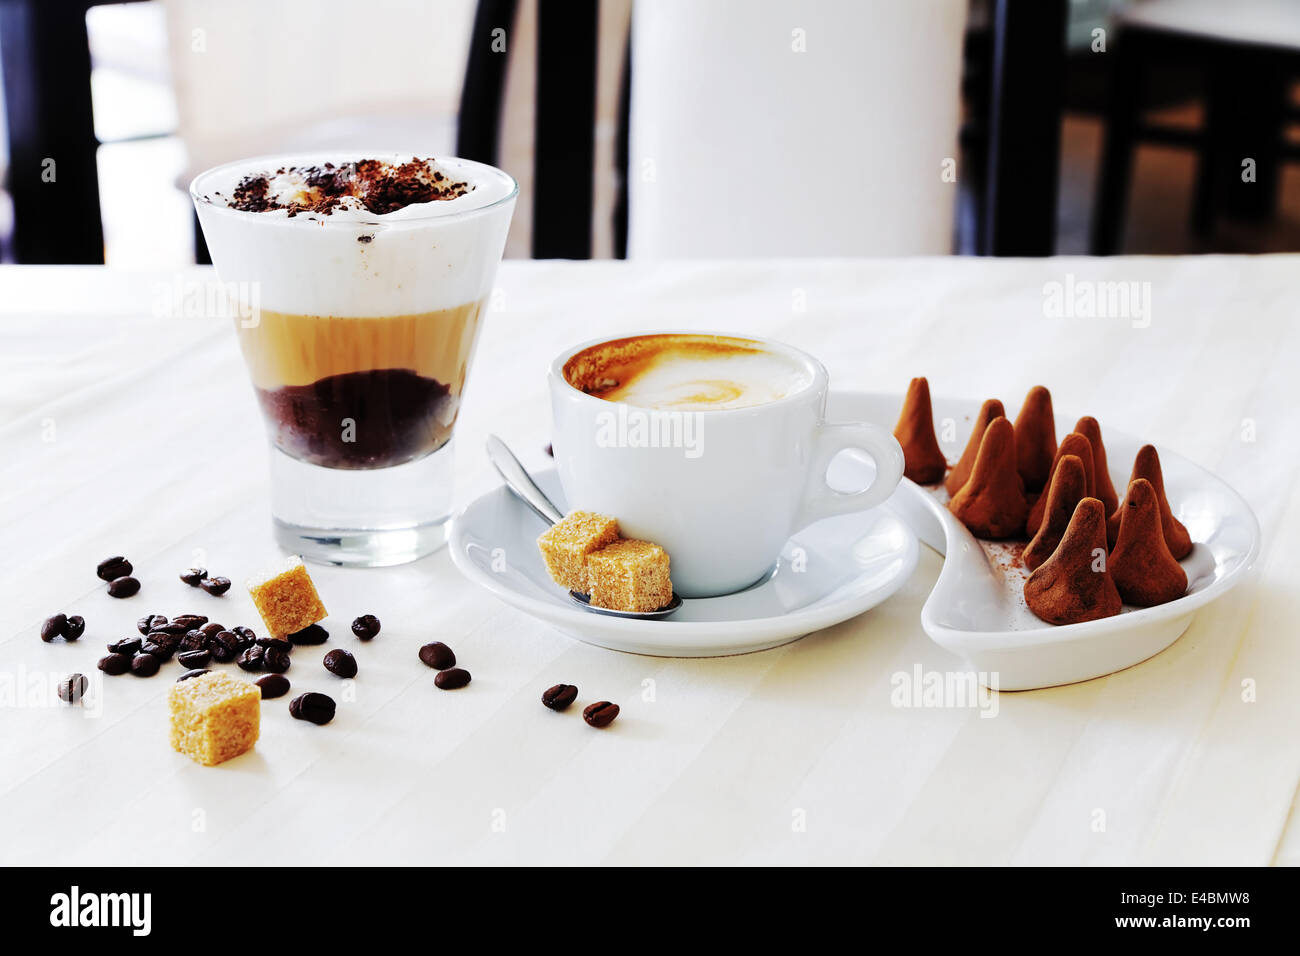 coffee and sweat candies on white table - Stock Image